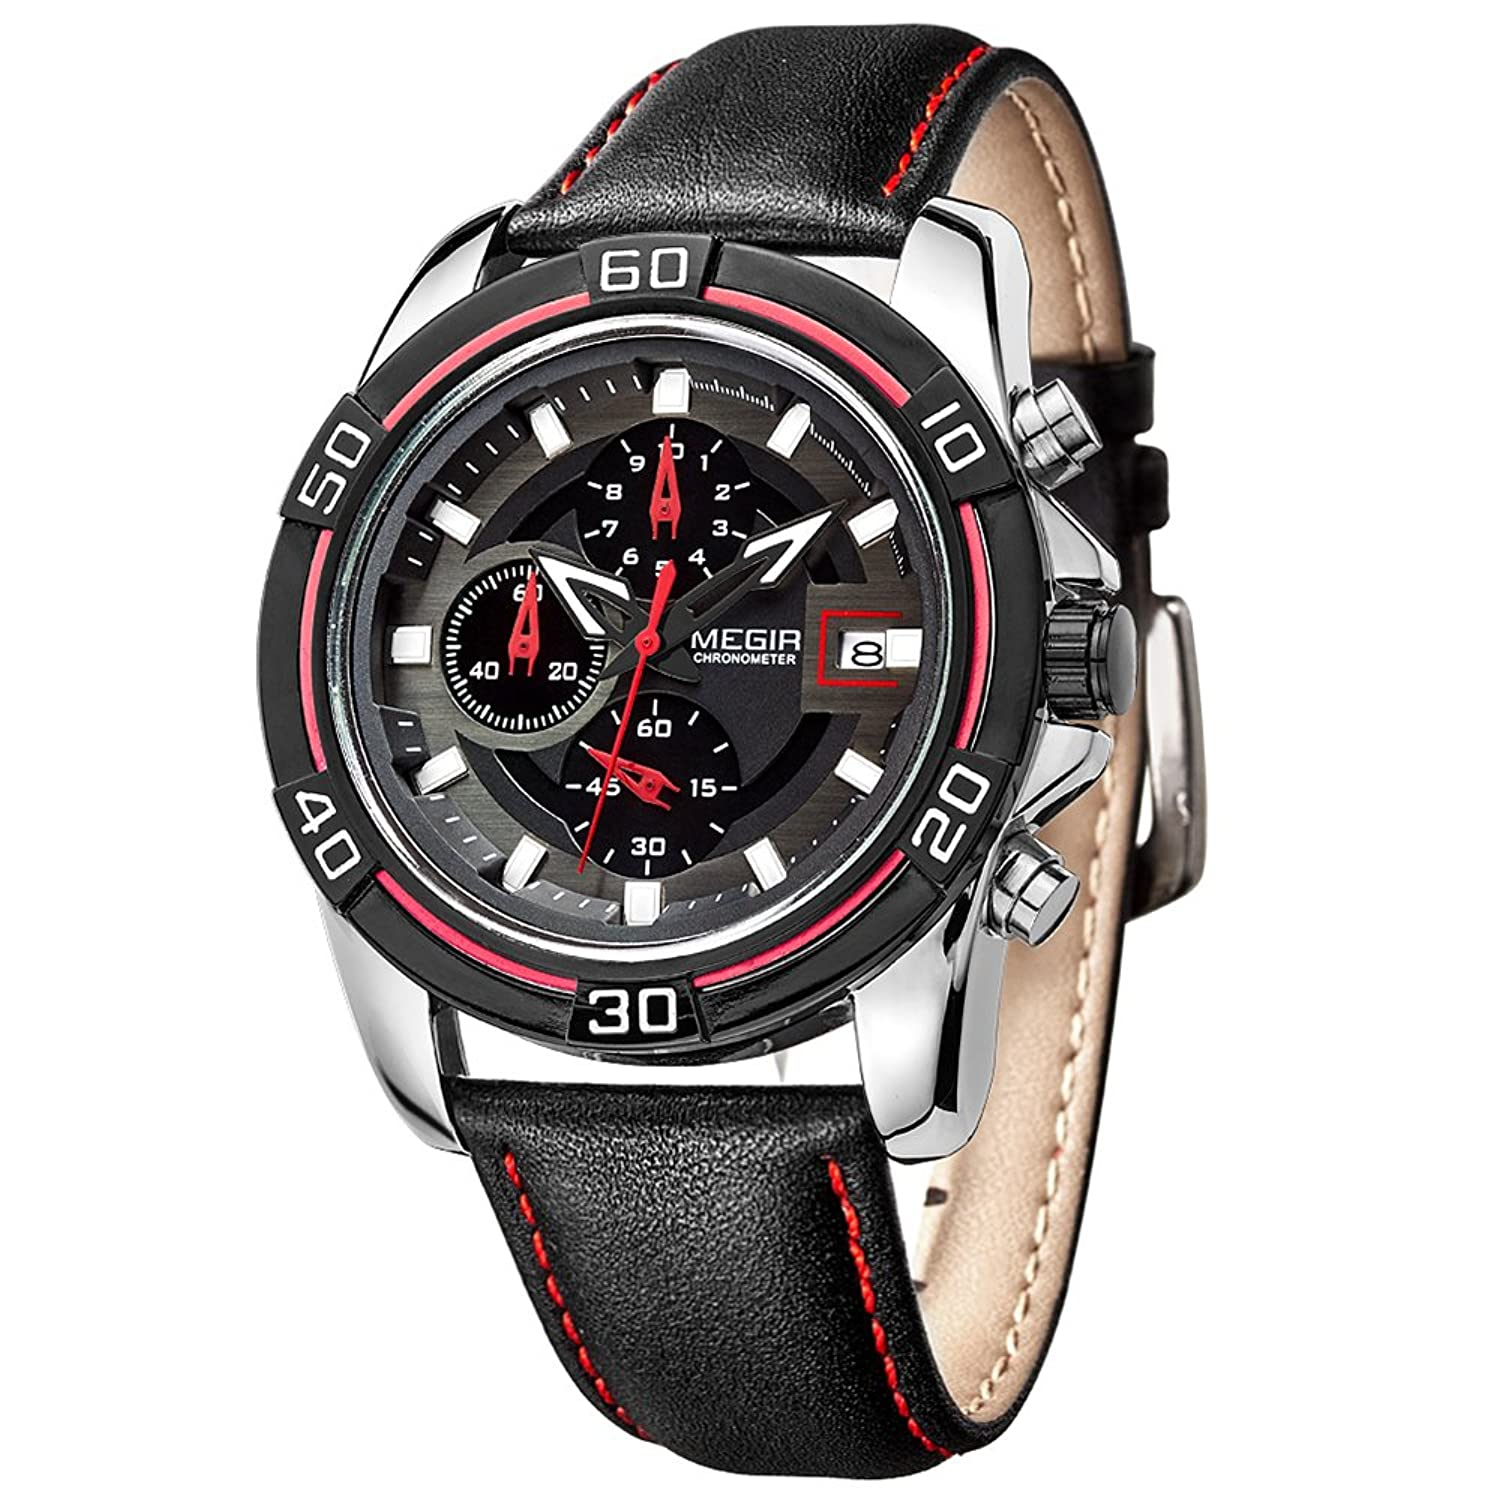 Amazon.com: MEGIR Sport Designed Watches Men Leather Strap Quartz Wrist Watch Chronograph relojes hombre: Watches